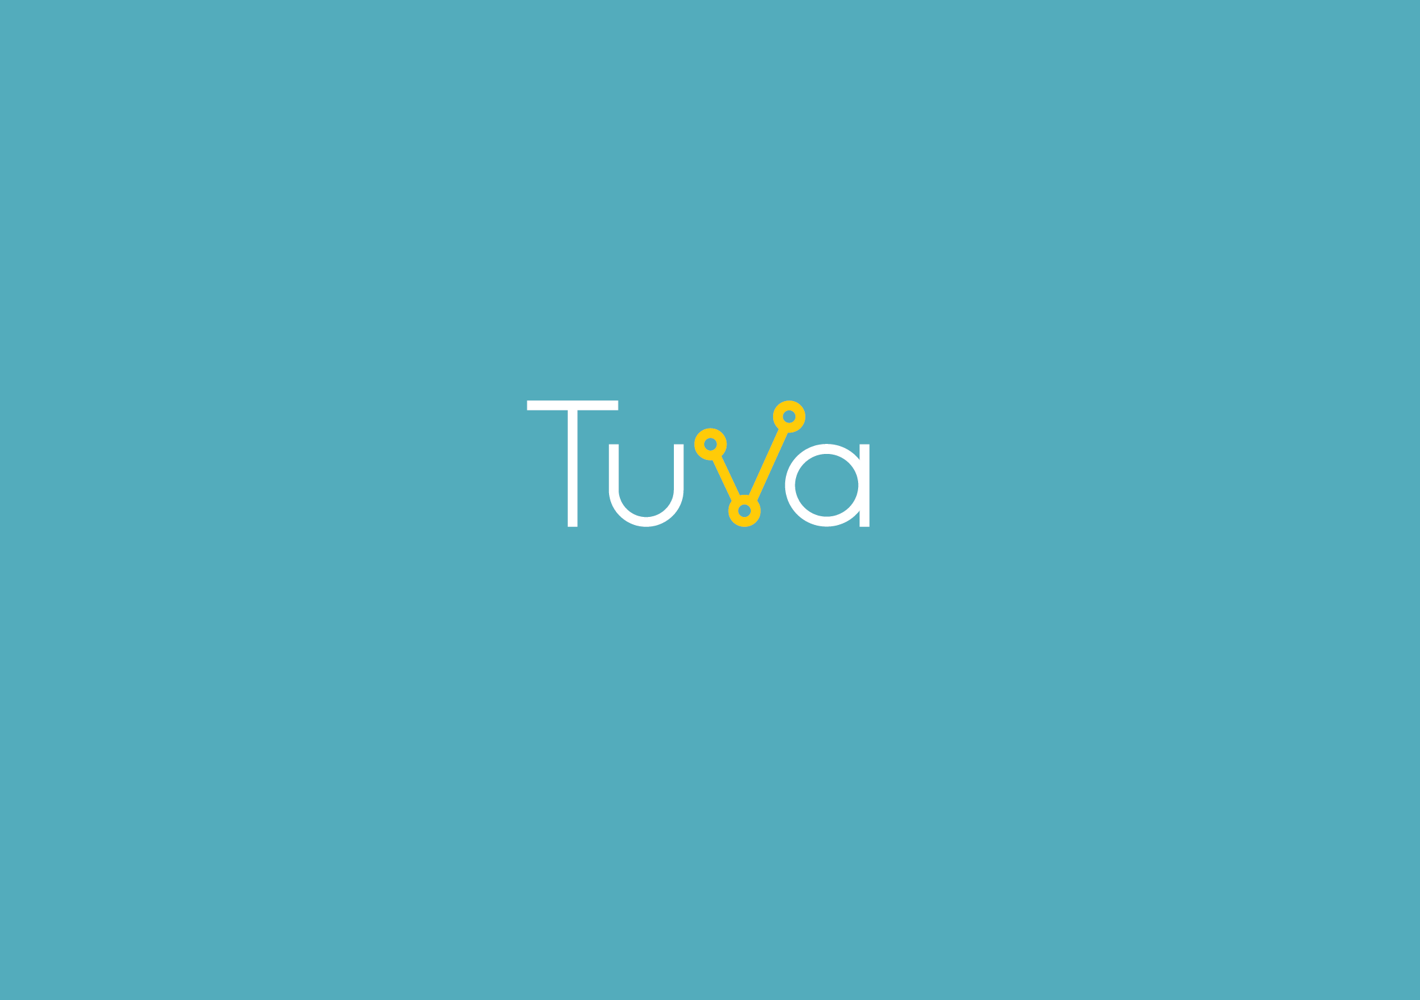 dr-tuva brand logo@2x.png